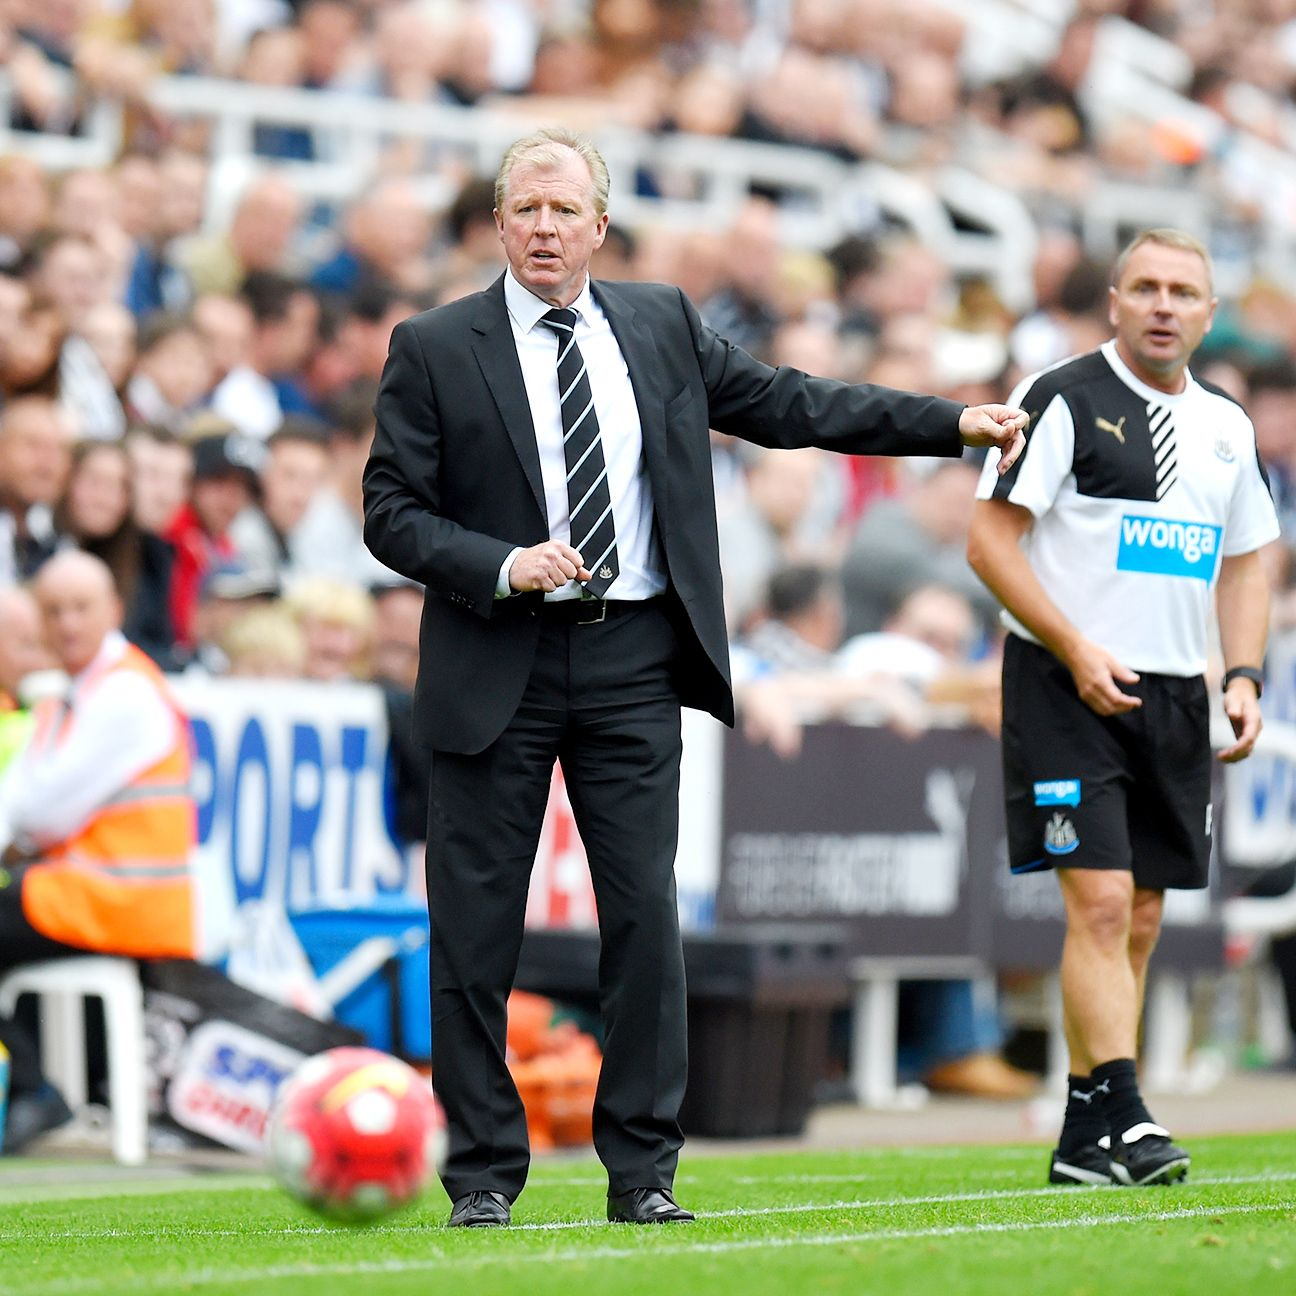 Steve McClaren's Newcastle tenure got off to a positive start in front of the home fans.